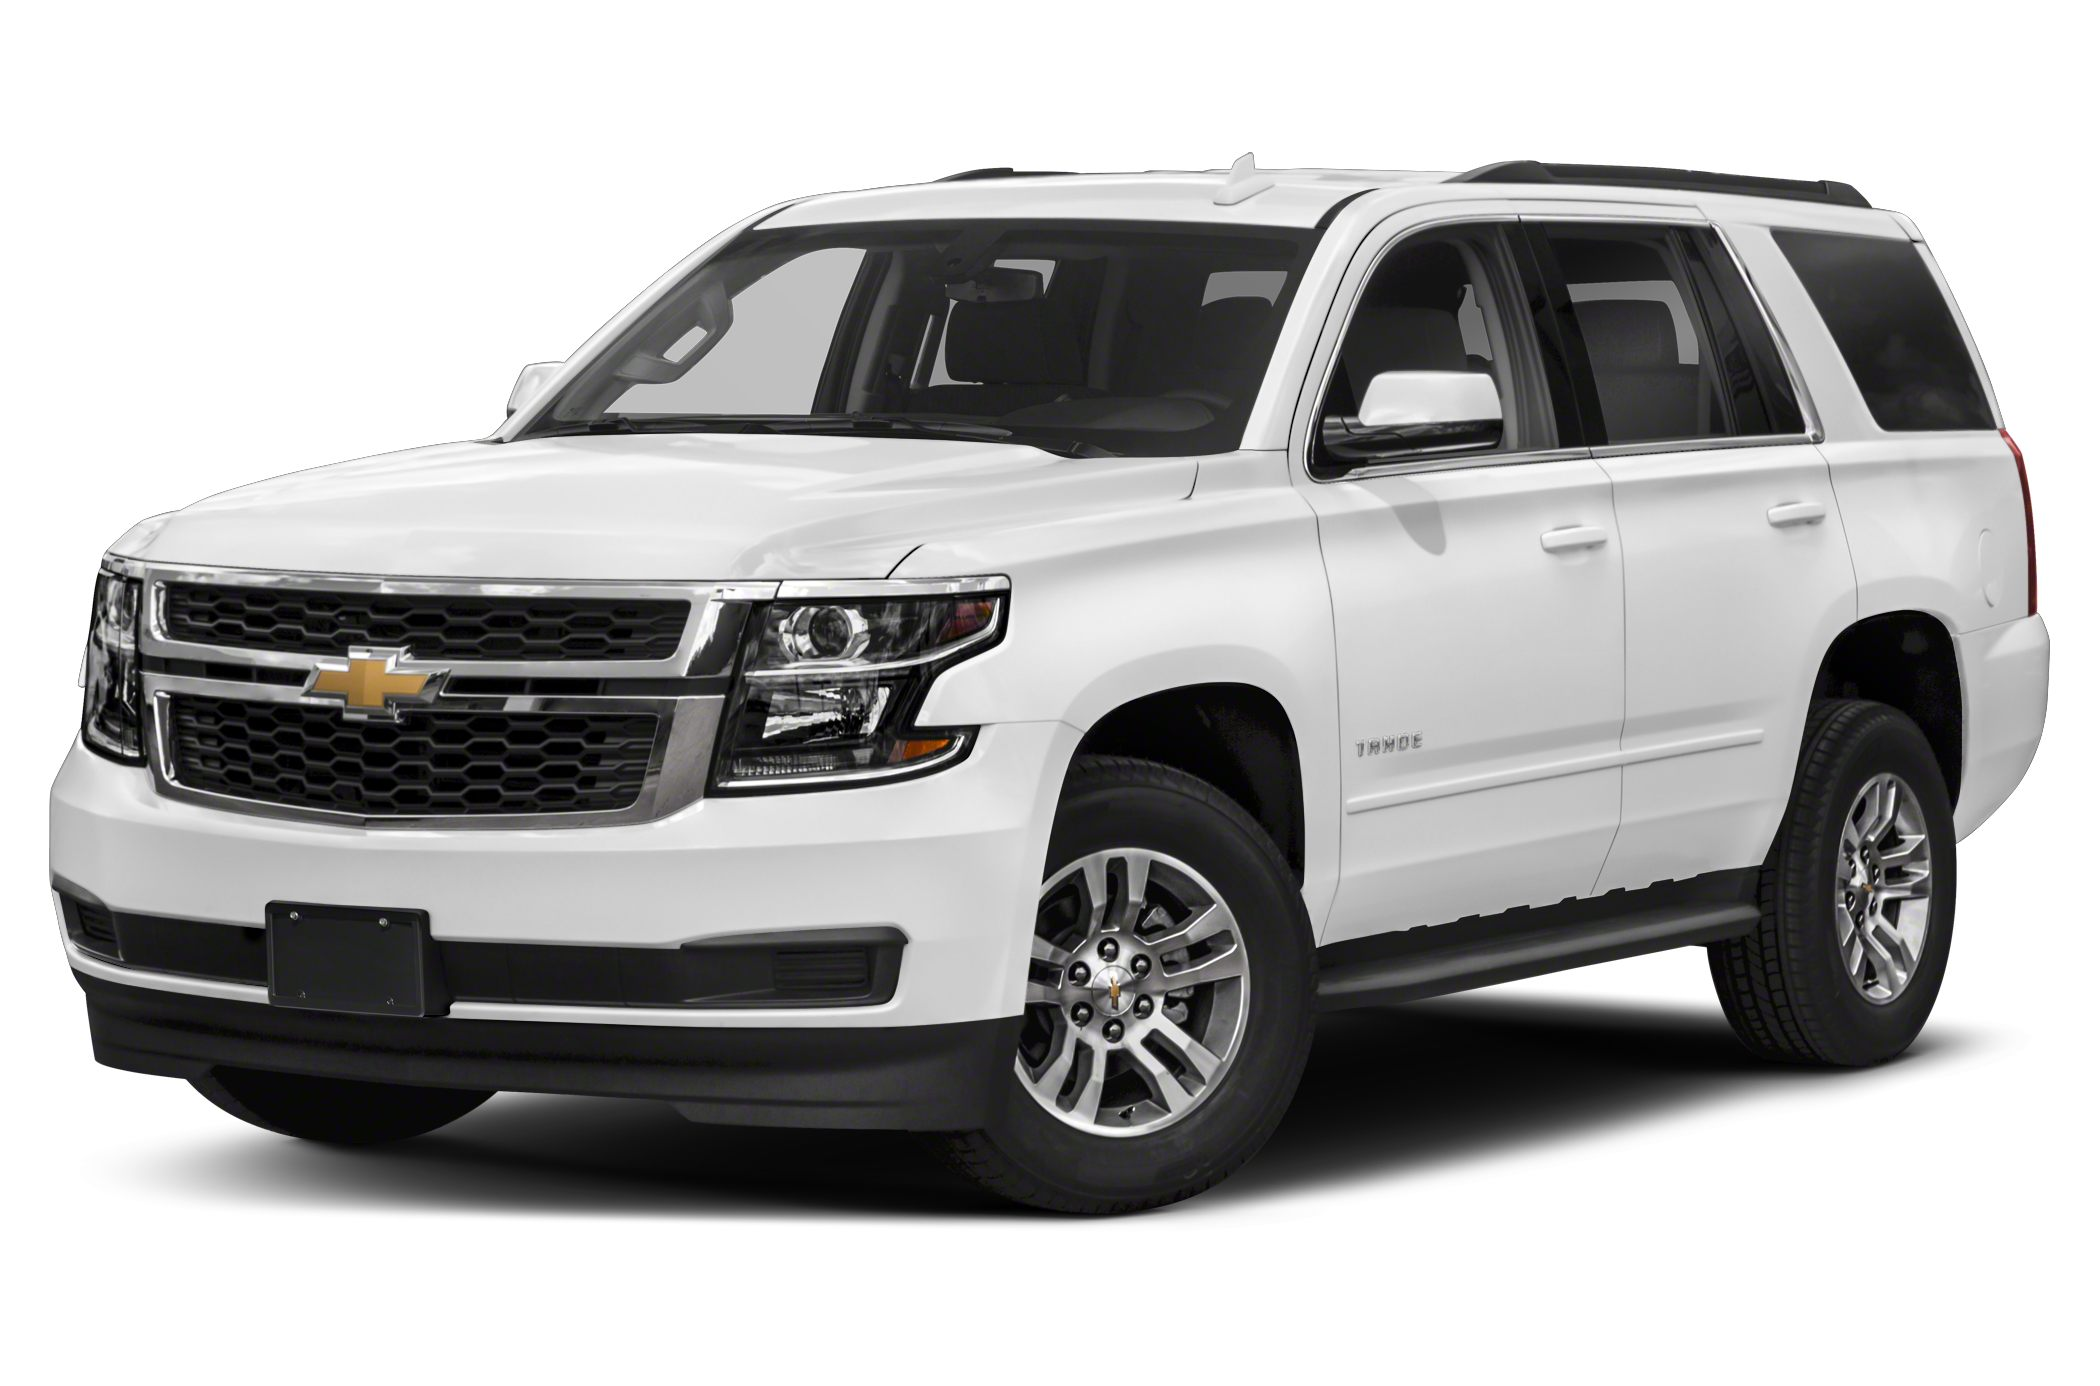 Chevy Tahoe Lease >> 2018 Chevrolet Tahoe Styles Features Highlights